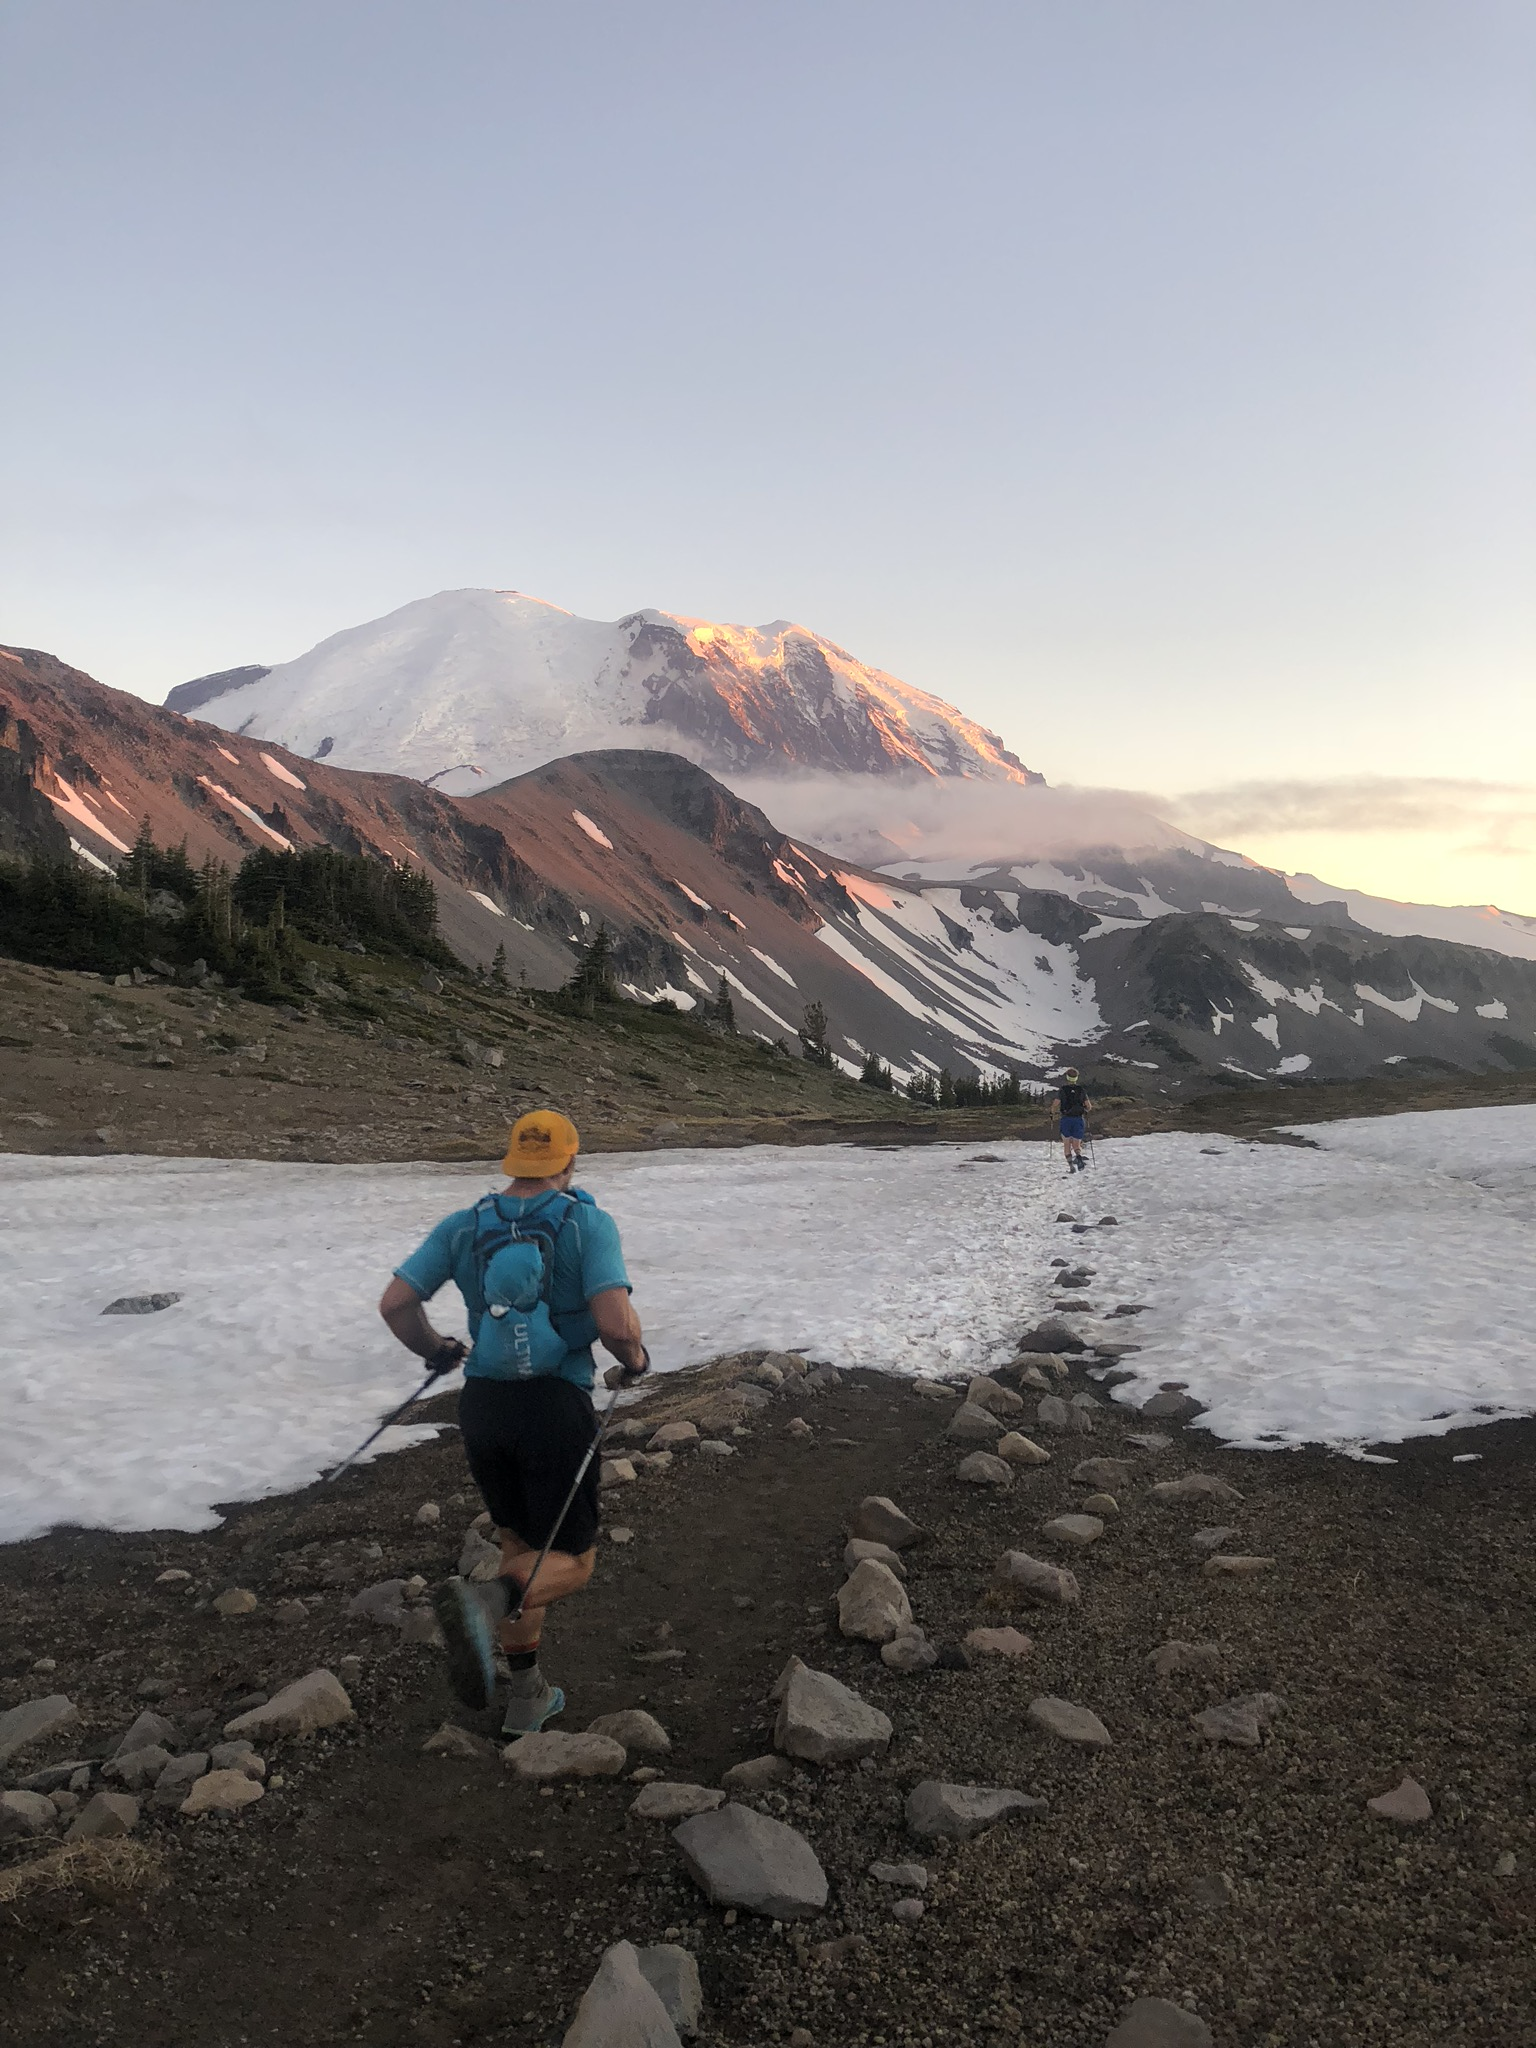 Incredible alpine running kicked off our final leg of the Rainier Infinity Loop